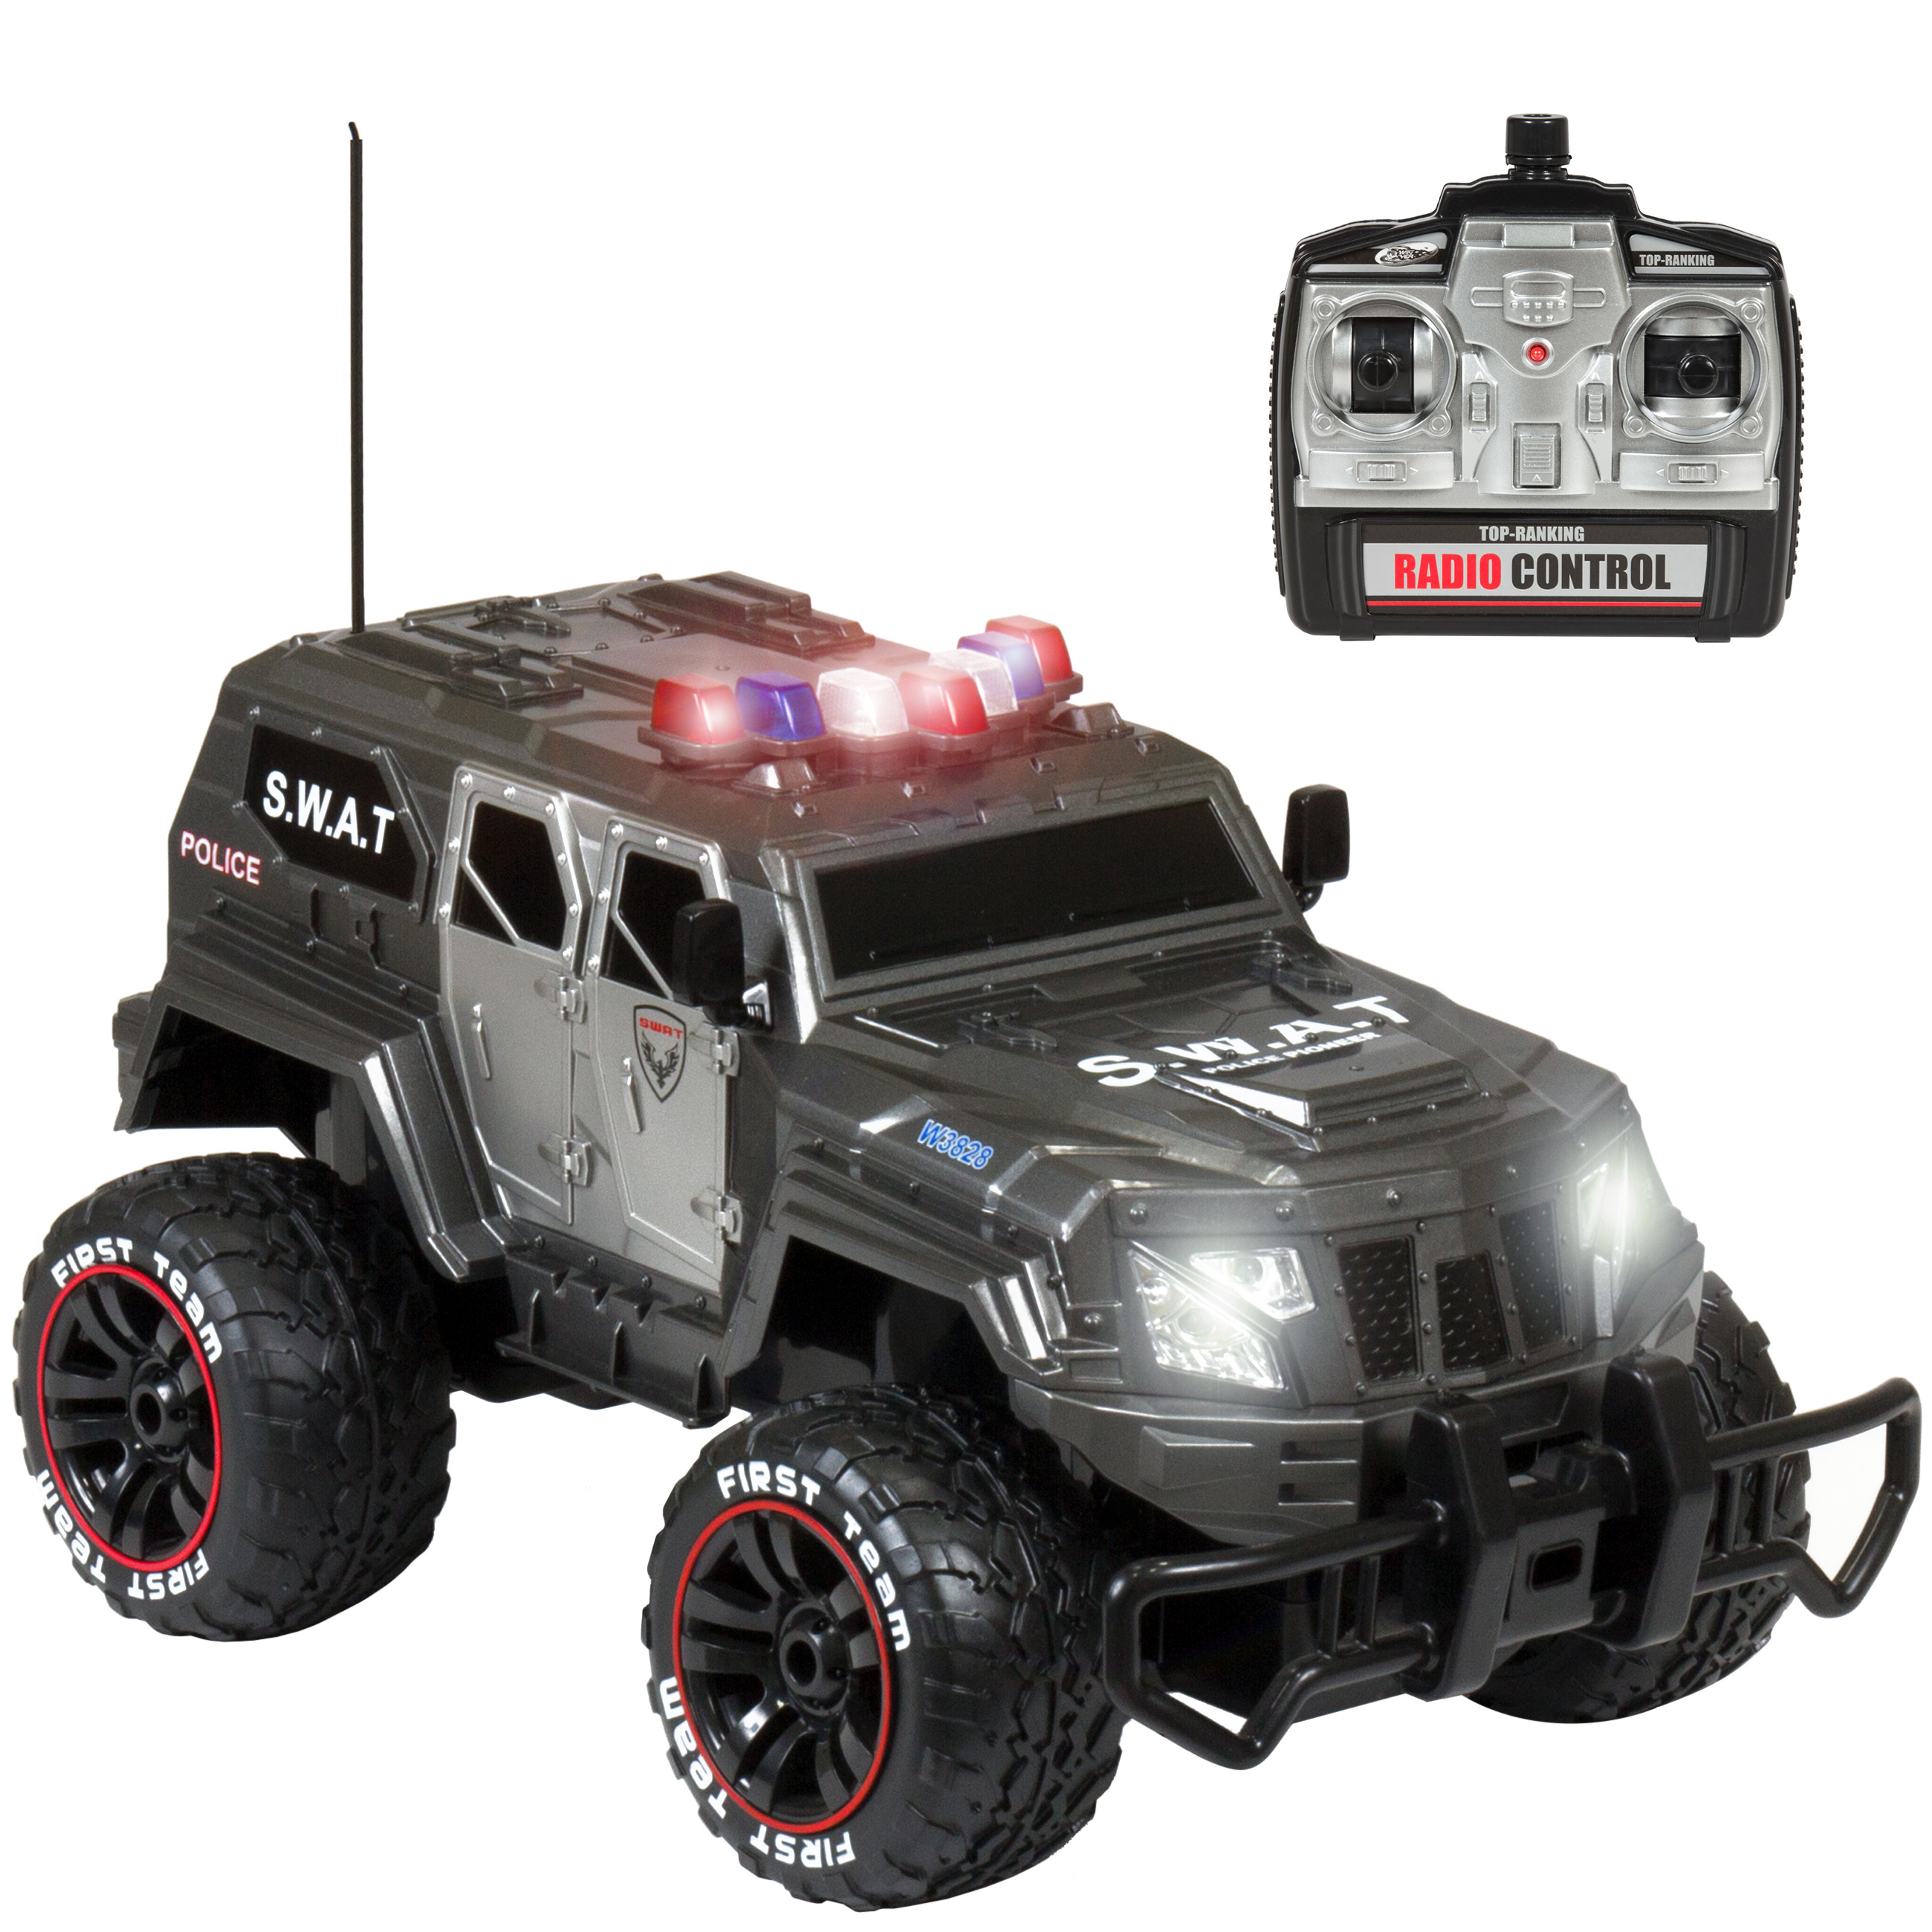 Best Choice Products 1:12 27Mhz Remote Control Police SWAT Truck RC Car w  USB Charger by Best Choice Products